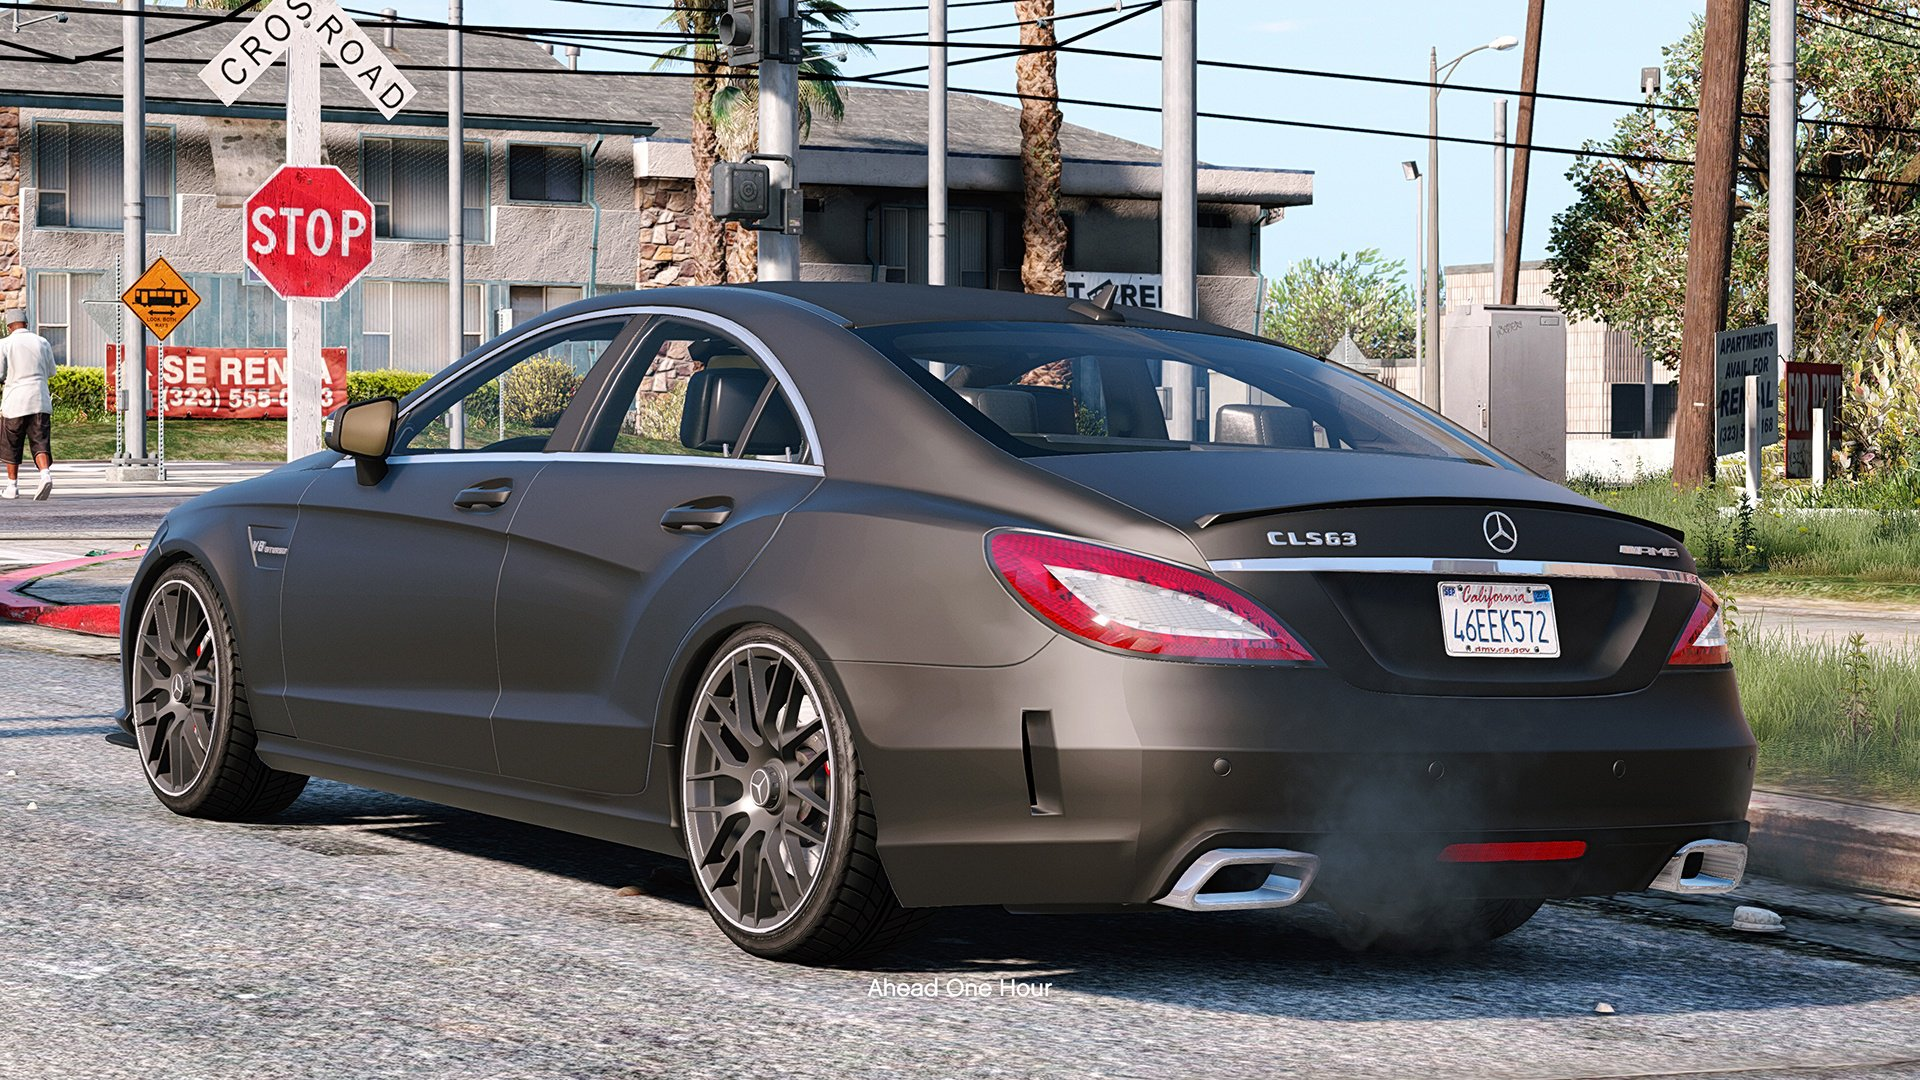 Mercedes Benz Cls 6 3 Amg Add On Vehicules Pour Gta V Sur Gta Modding